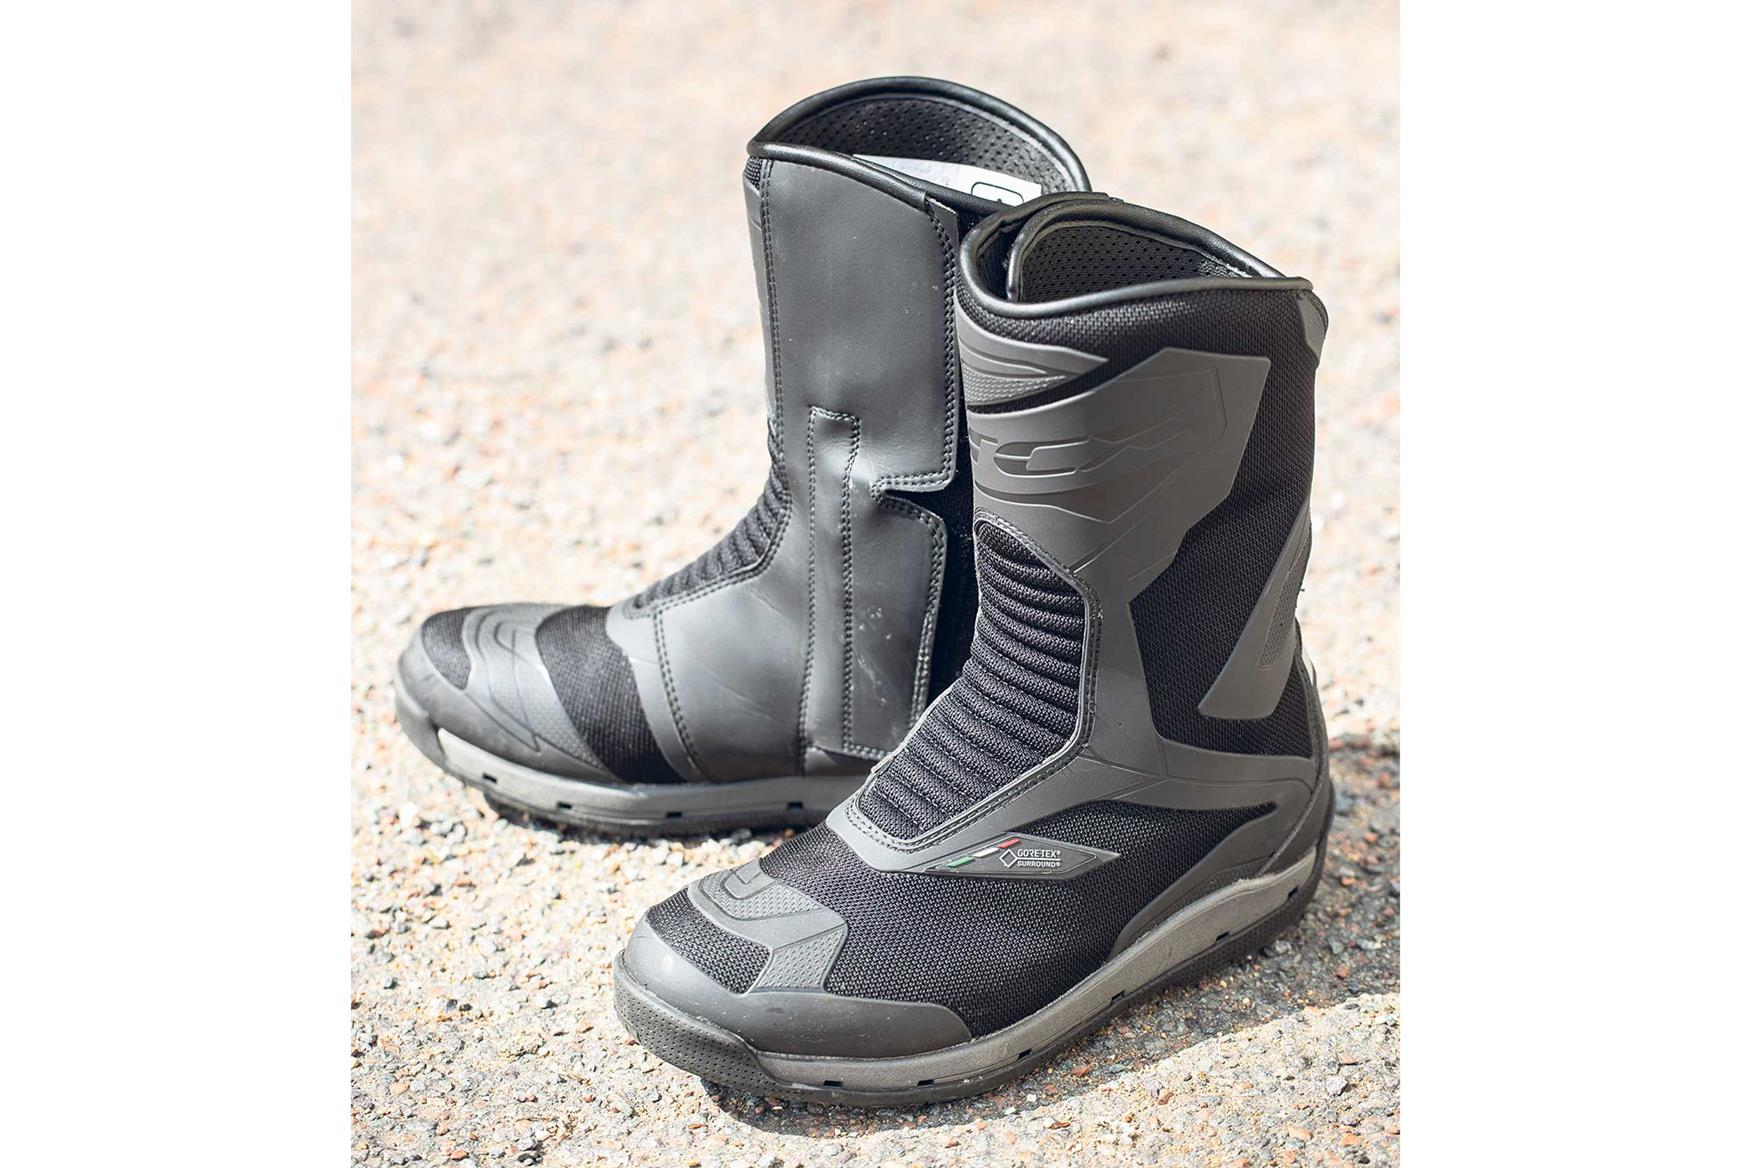 TCX Clima Surround motorcycle boots